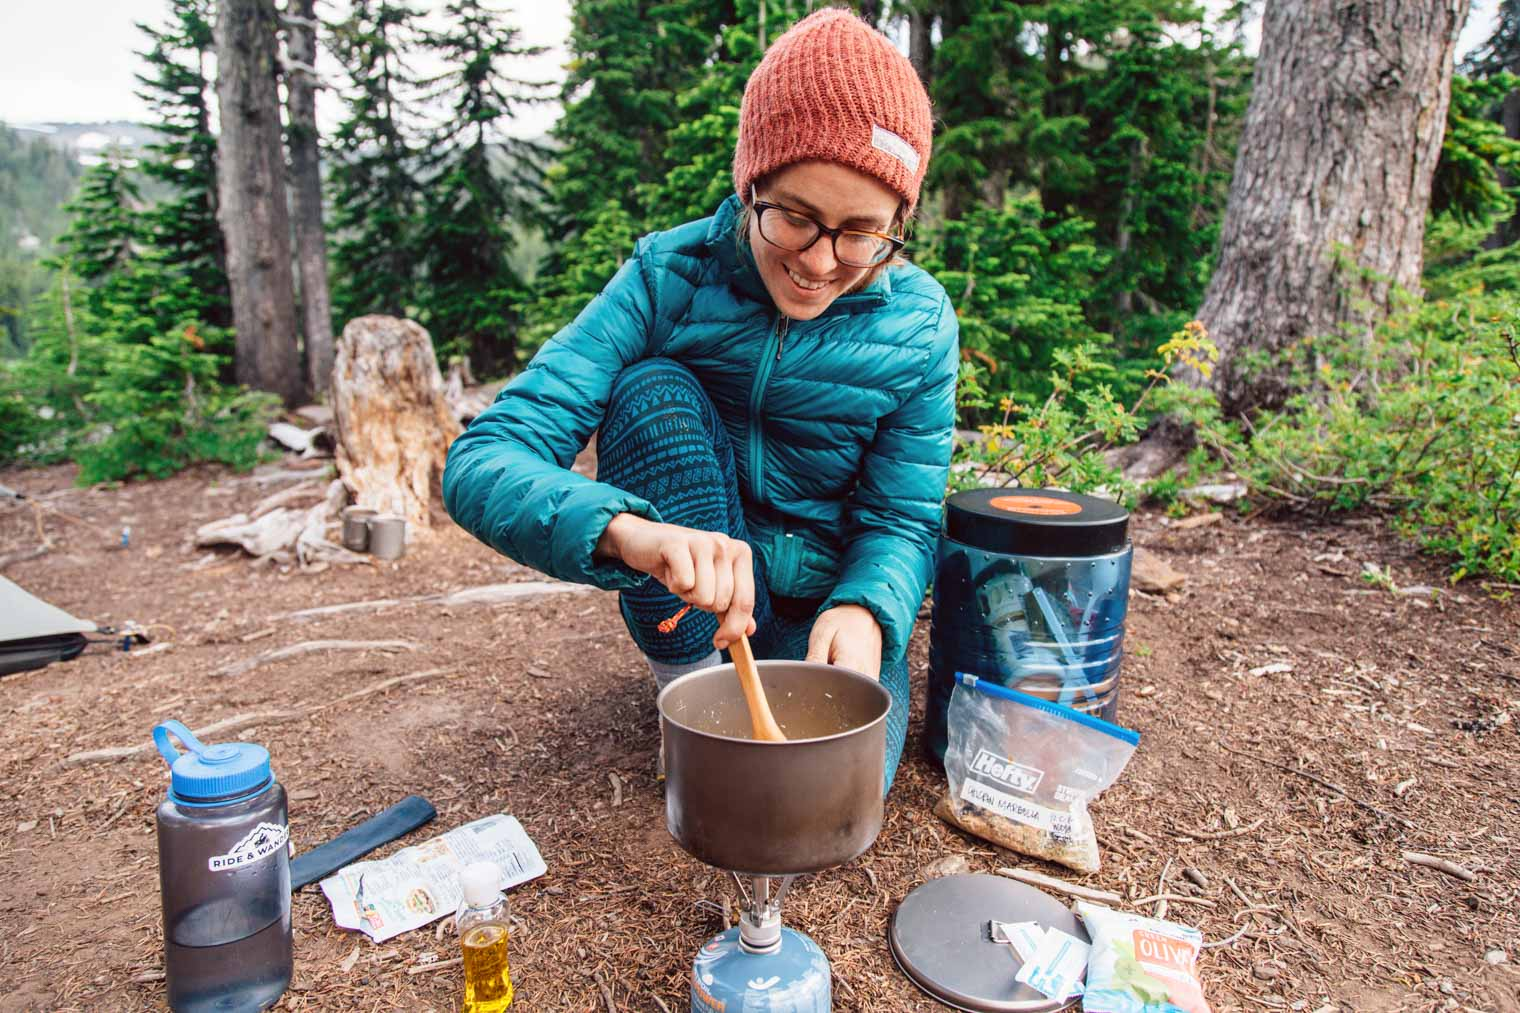 Backpacker's Chicken Marbella: A sweet & savory backpacking meal that uses no dehydrated ingredients and requires only boiling water to cook. A fast, simple, and totally mouthwatering dinner for your backcountry adventures.